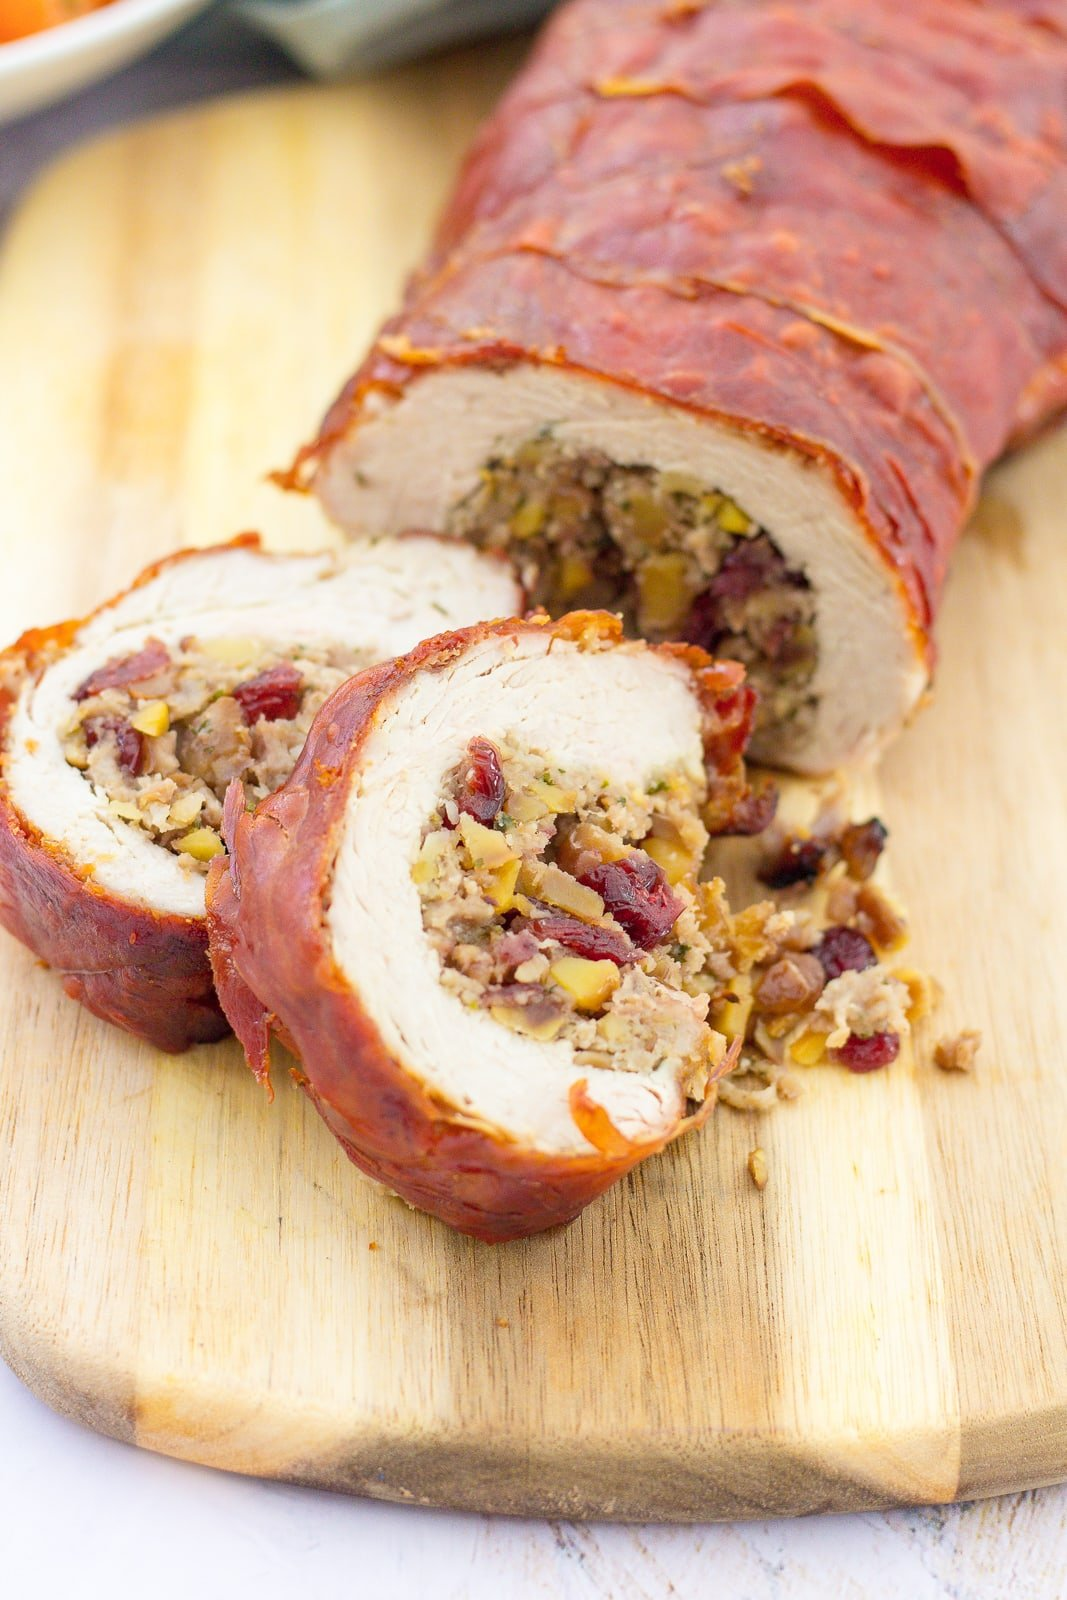 Rolled Stuffed Turkey Breast wrapped in Prosciutto